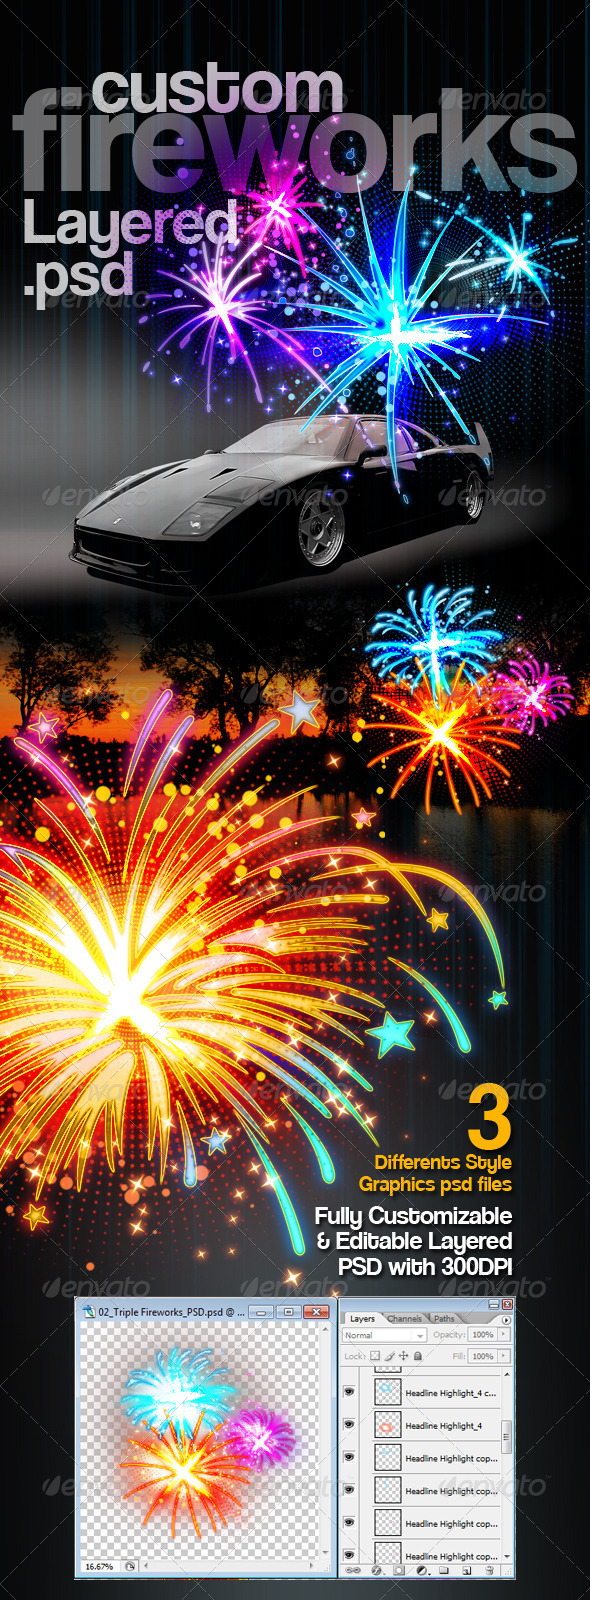 Custom Fireworks Layered PSD Graphics - Decorative Graphics